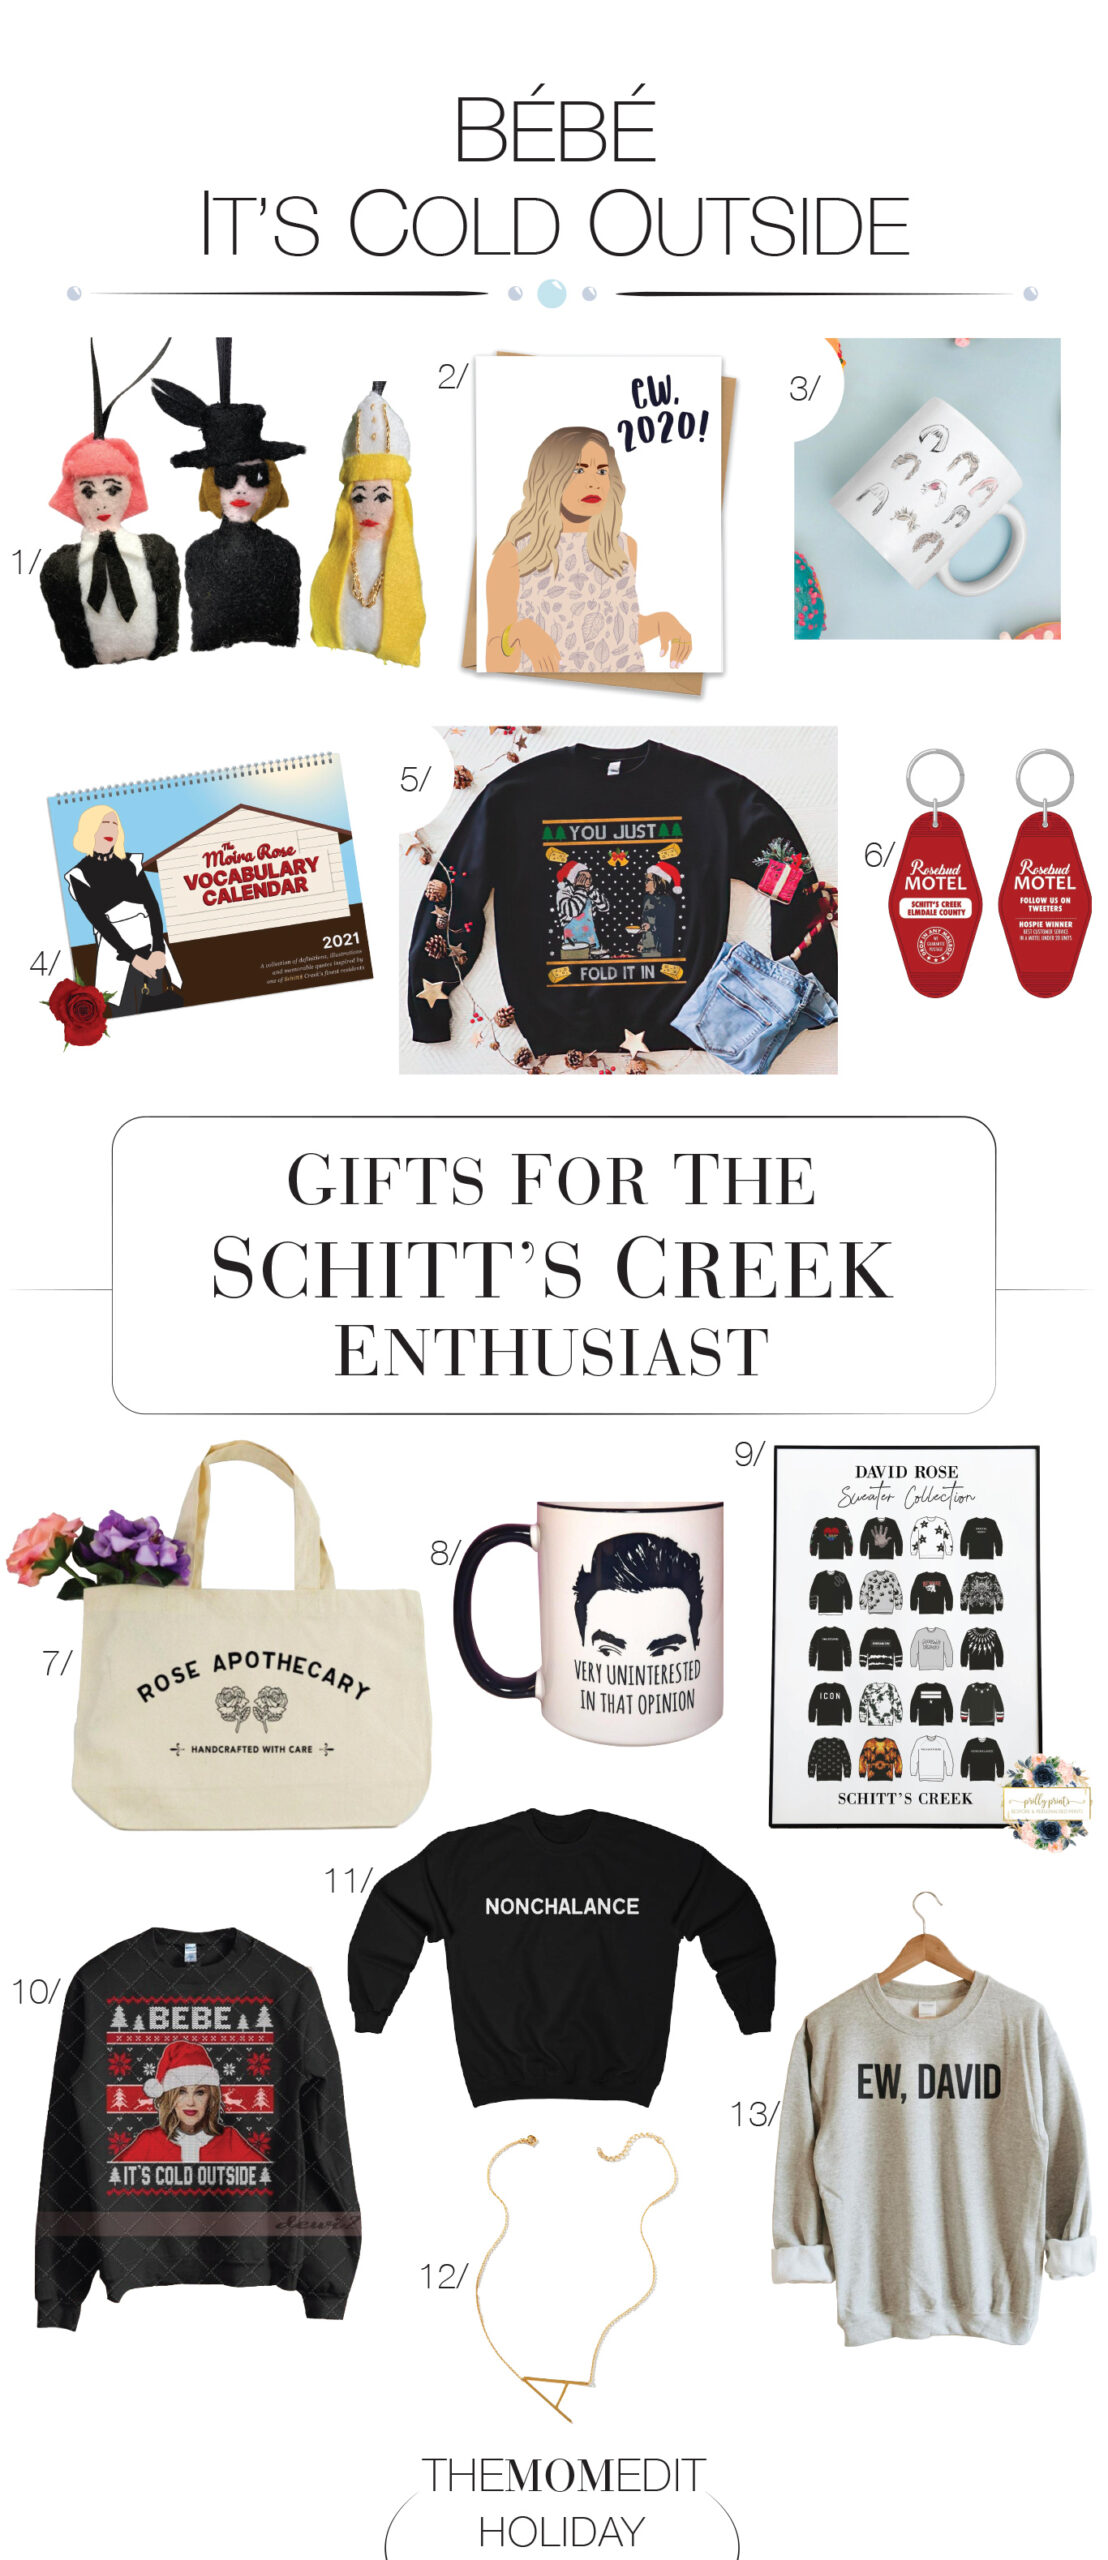 An homage to Moira's vocabulary? The Schitt's Creek fan know what's up. A Schitt's Creek Christmas sweater or ornament is also on our best gift list